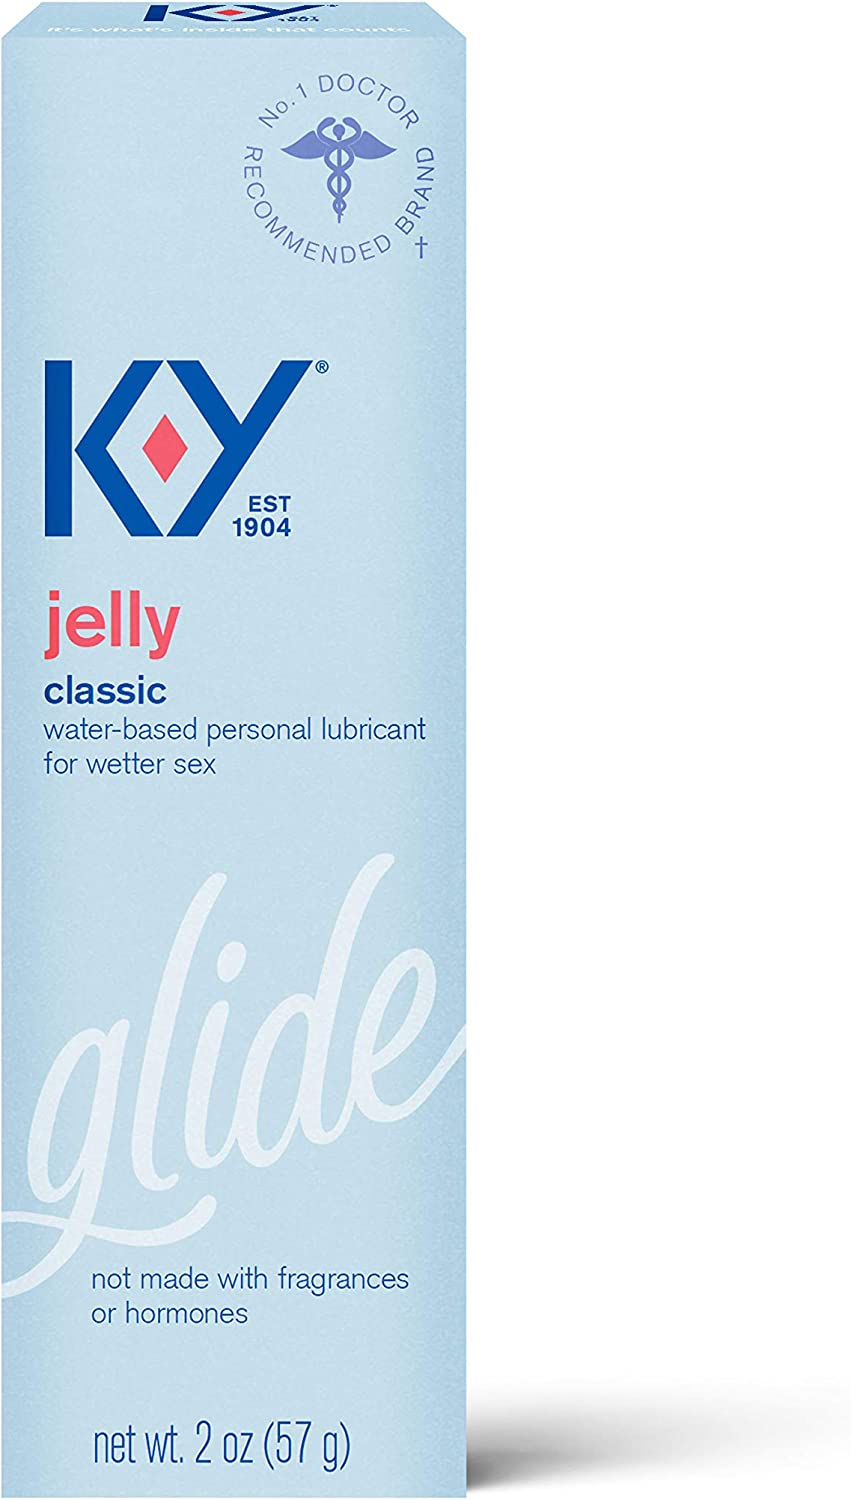 K-Y OFFicial Jelly Lube Personal Max 71% OFF Lubricant to Water-Based Formula Safe